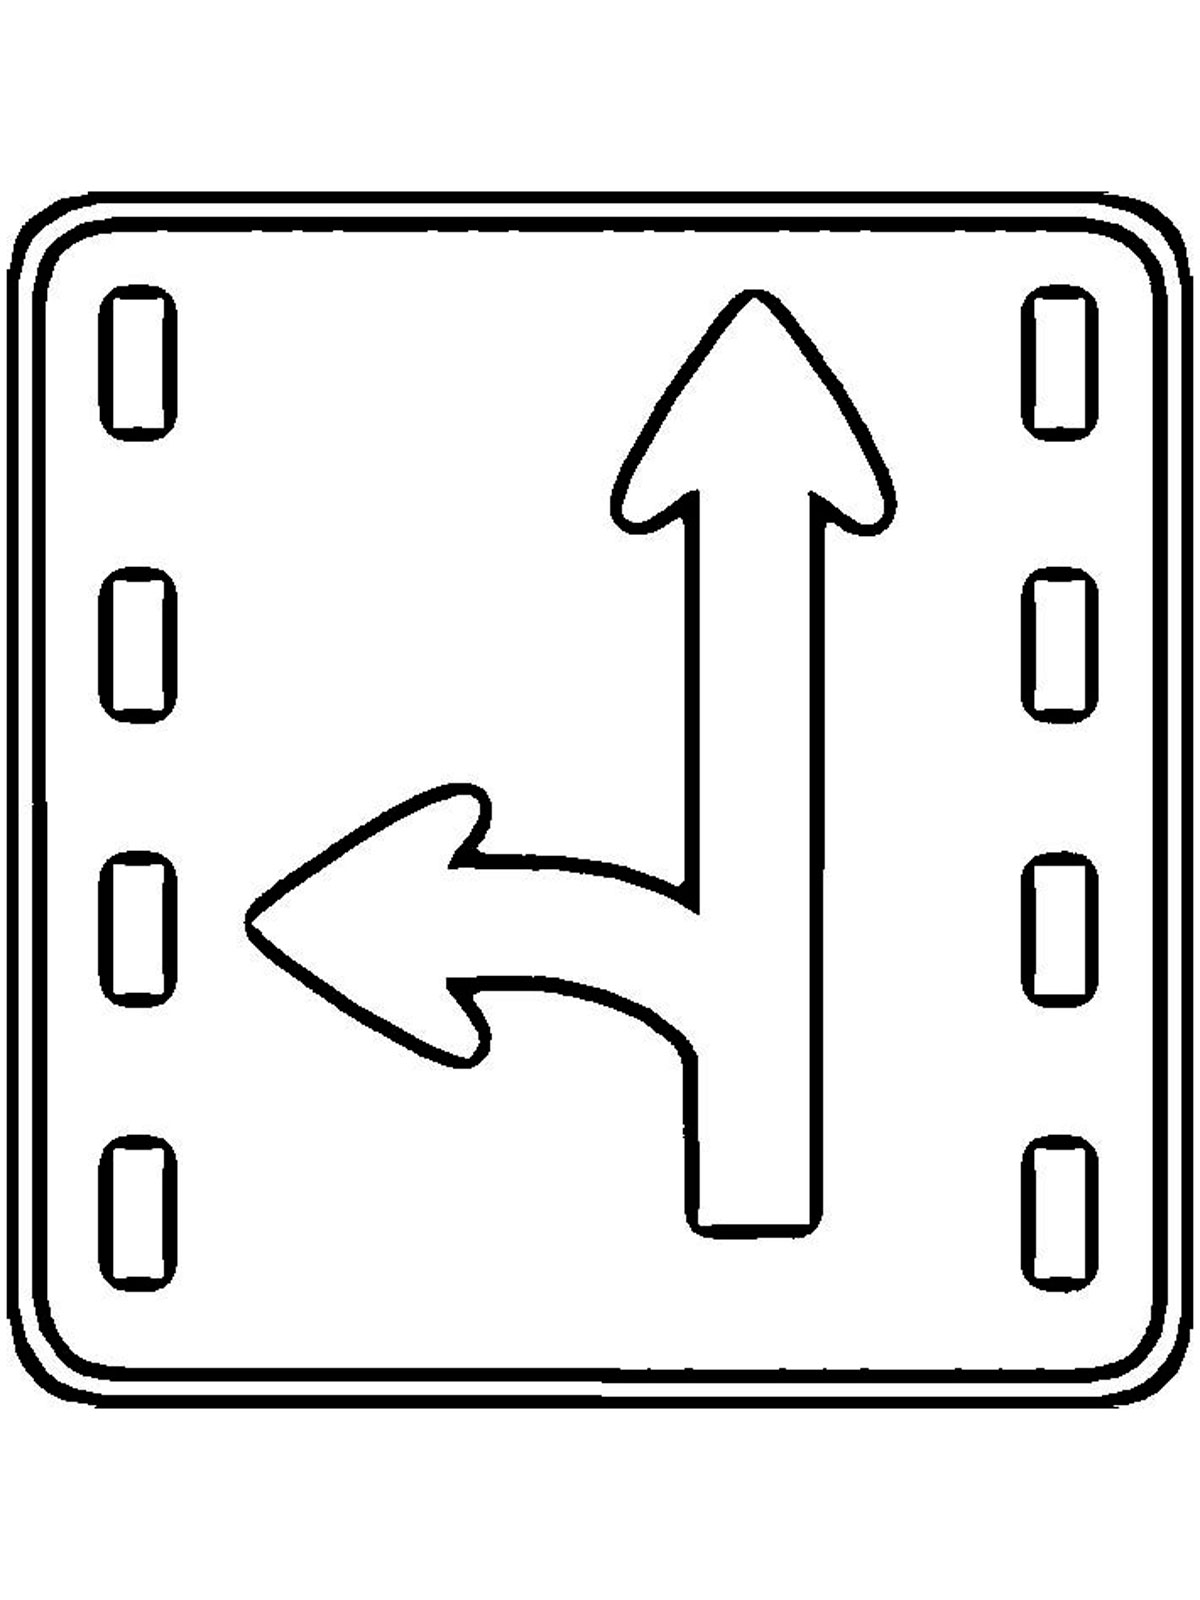 Road Signs Coloring Pages Traffic Sign Coloring Pages Gallery Of Road Sign Drawing at Getdrawings Gallery